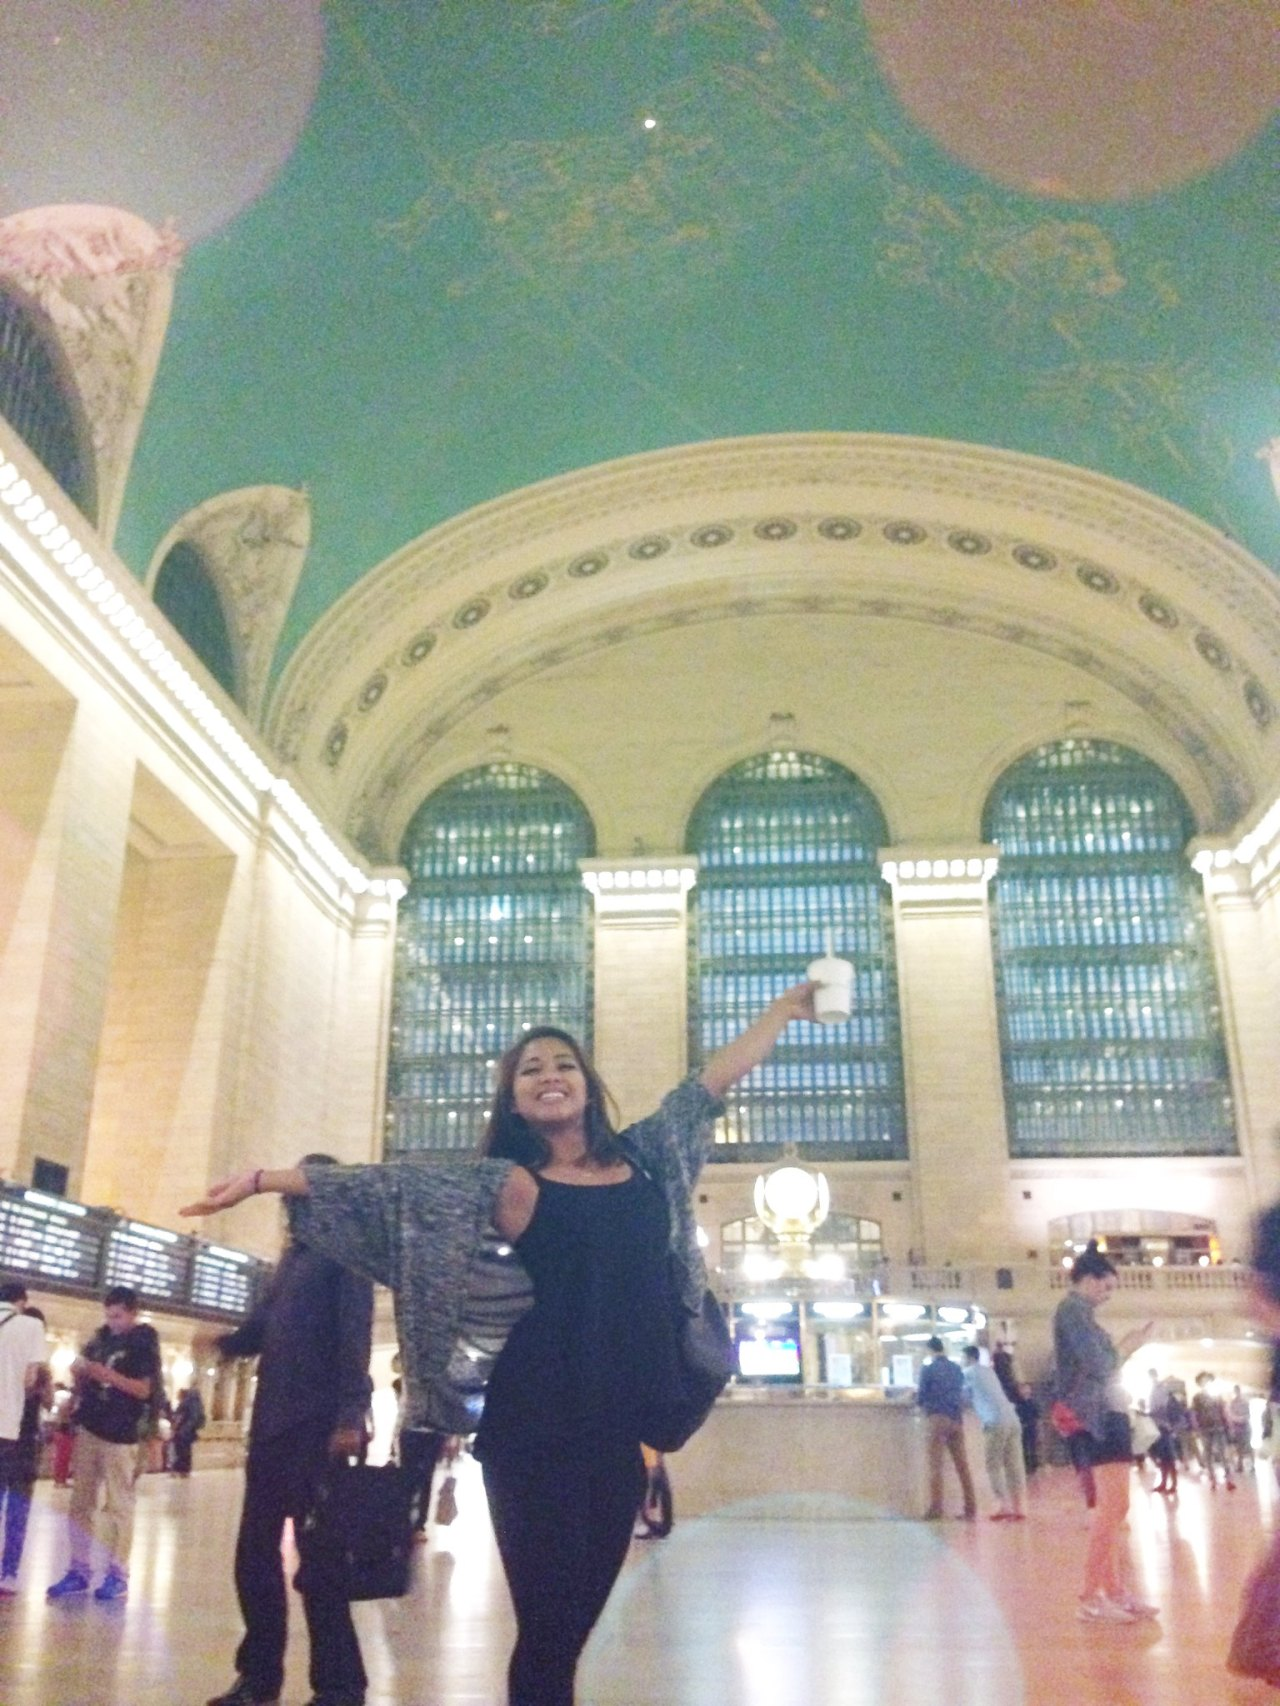 grand-central-raleighwrites-fashion